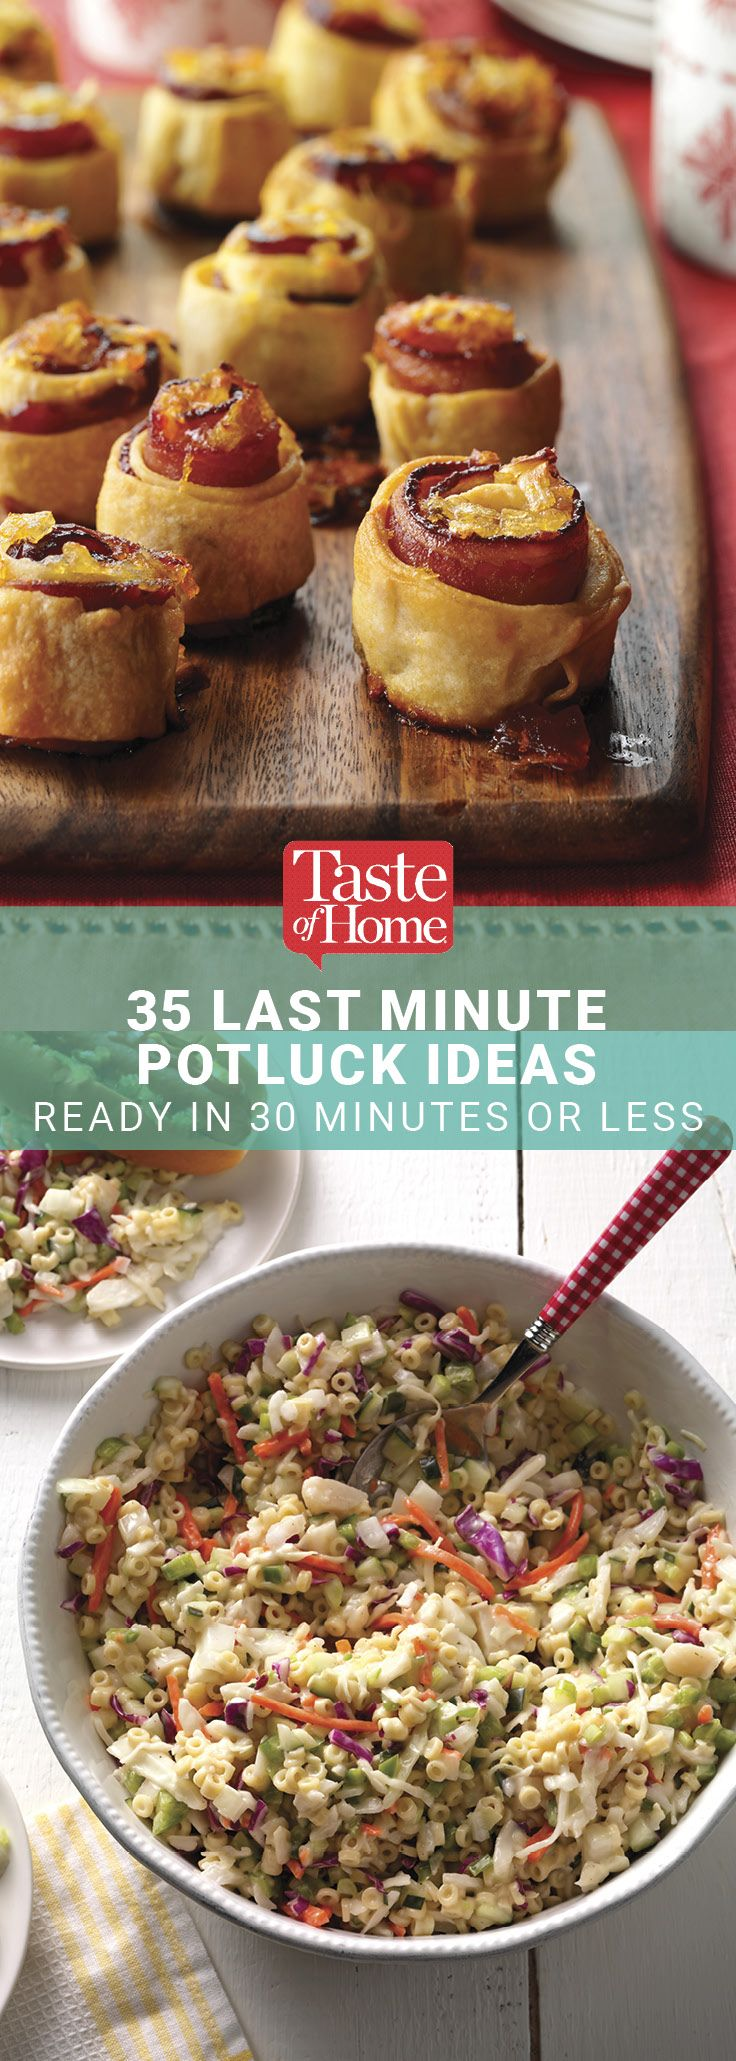 35 Last Minute Potluck Ideas Ready in 30 Minutes or Less